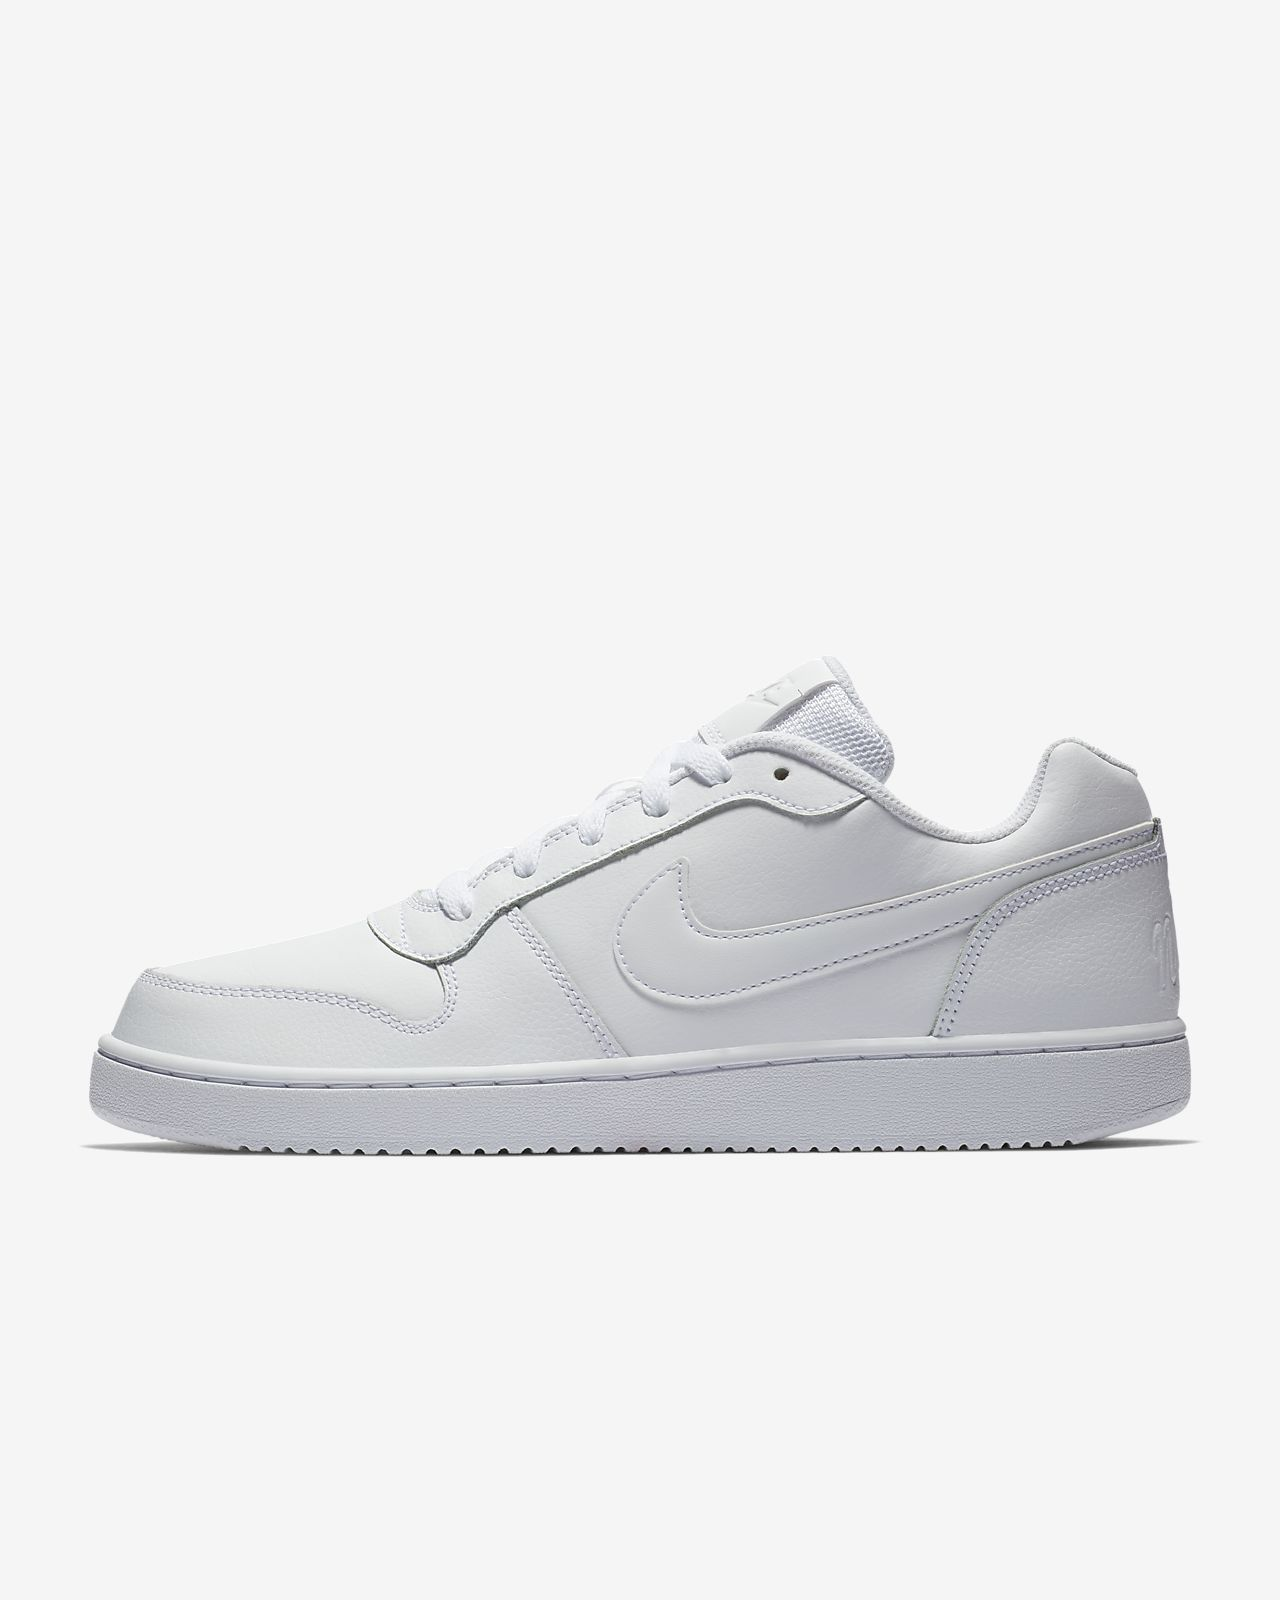 Buy Shop US CA Nike Air Force 1 07 LV8 Utility BlackWhite